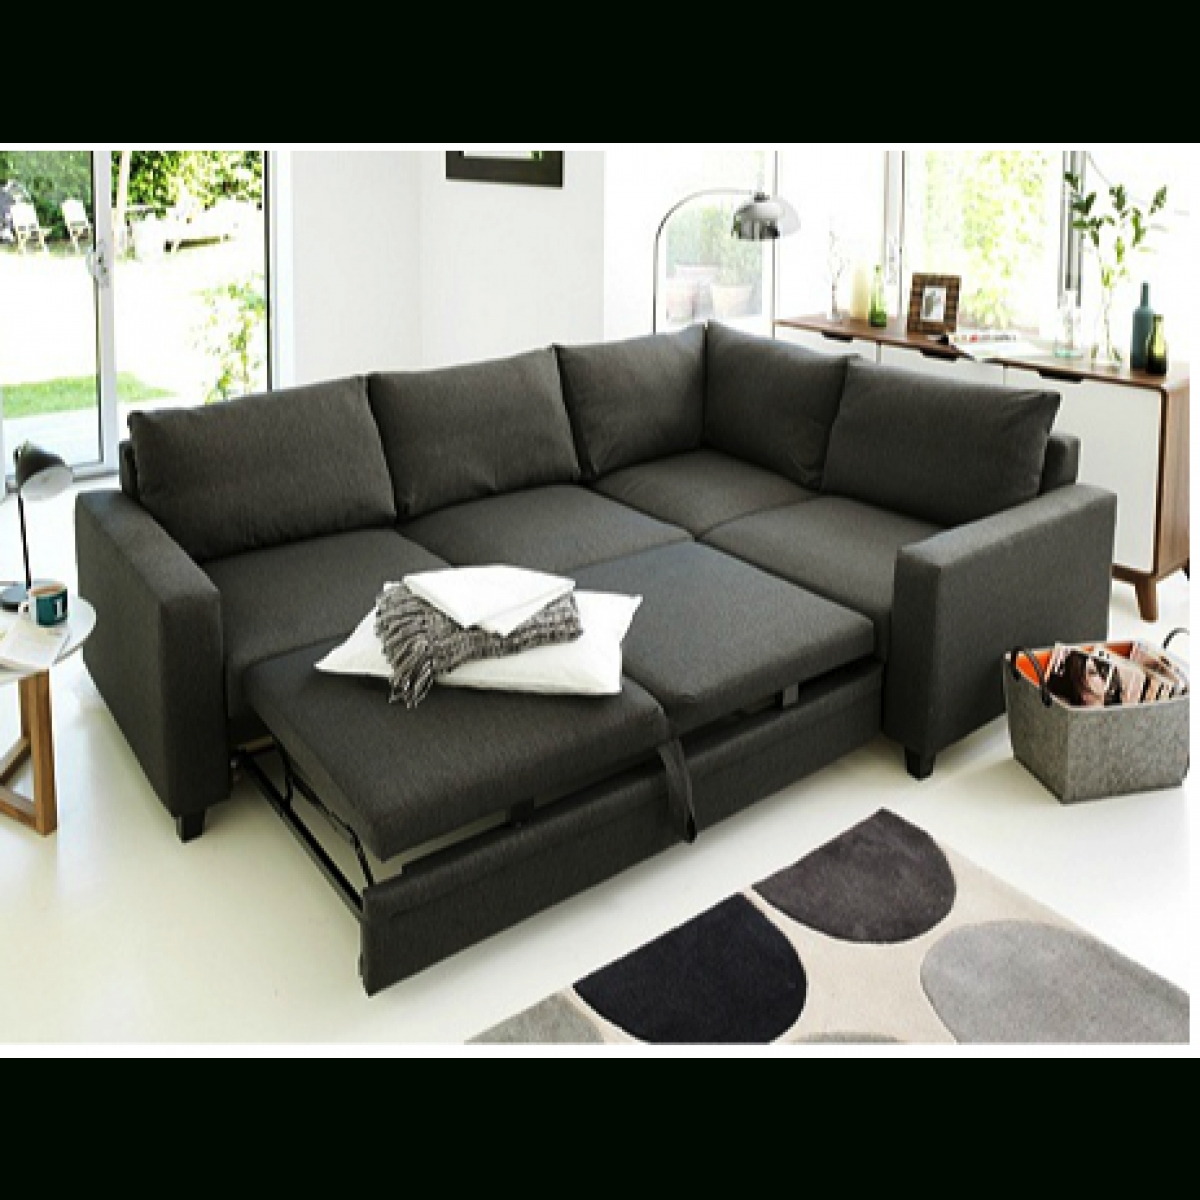 Hygena Seattle Right Hand Corner Sofa Bed - Charcoal. - Furnico inside Corner Sofa Beds (Image 10 of 15)